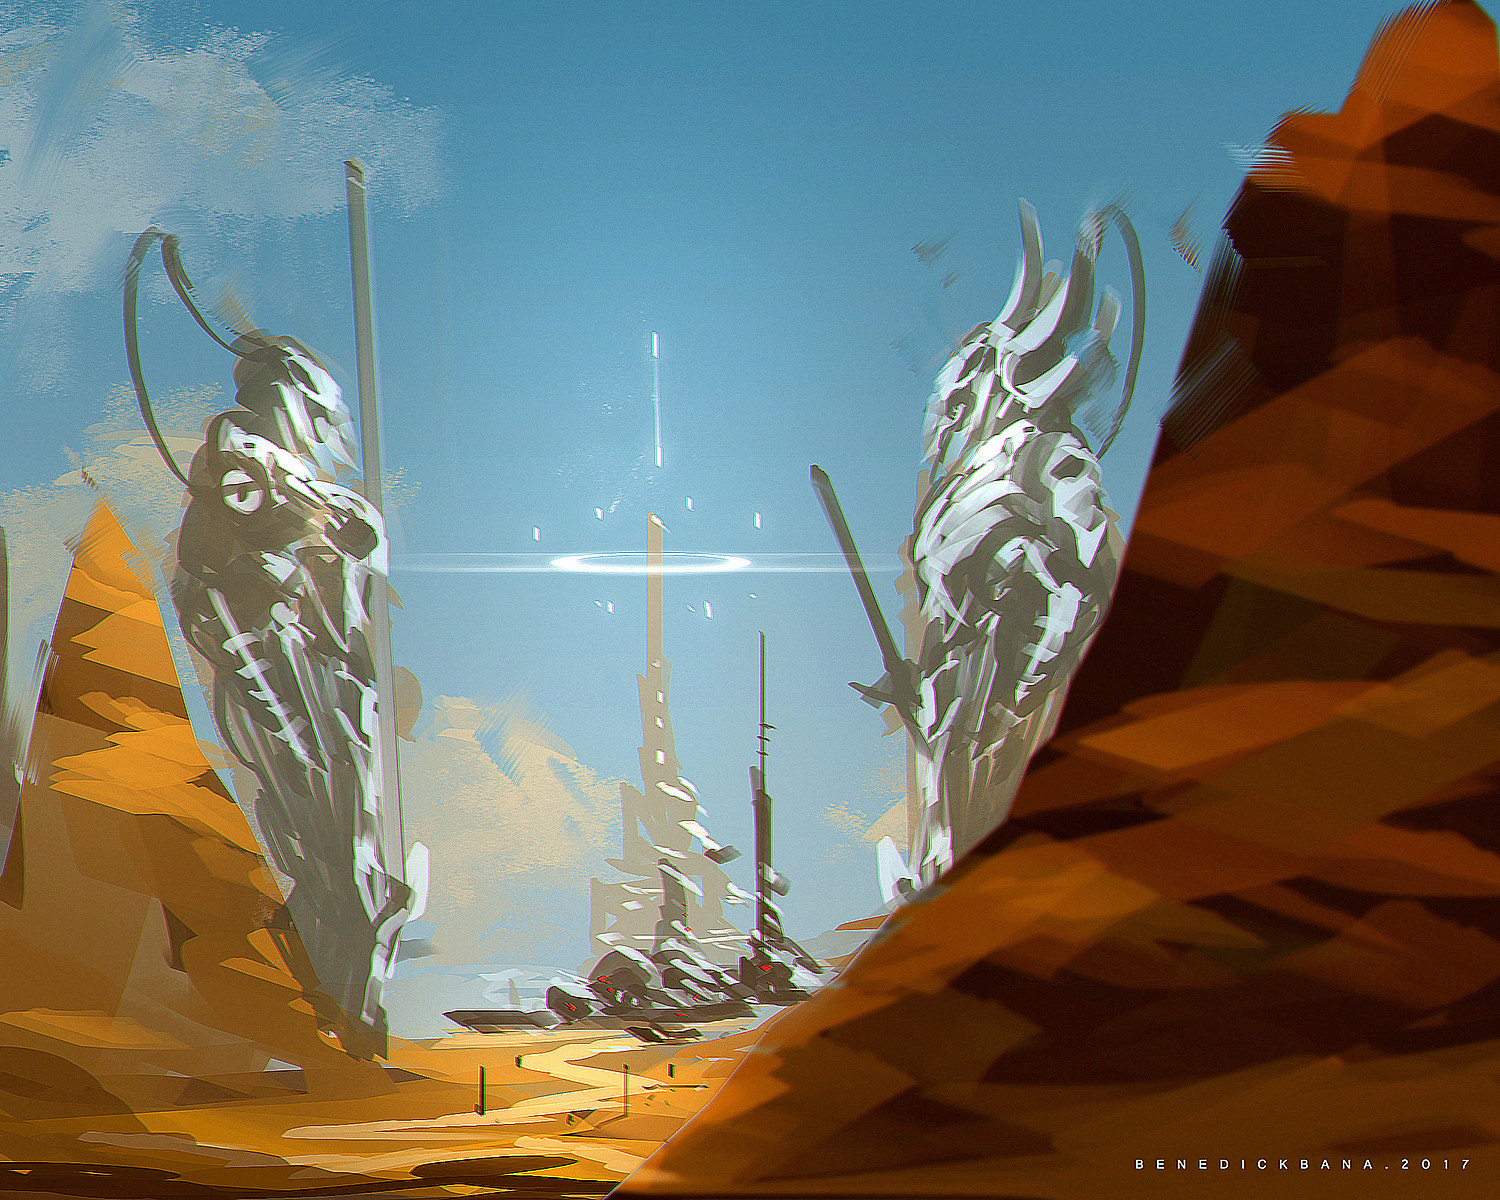 Benedick bana land of the light crusade lores